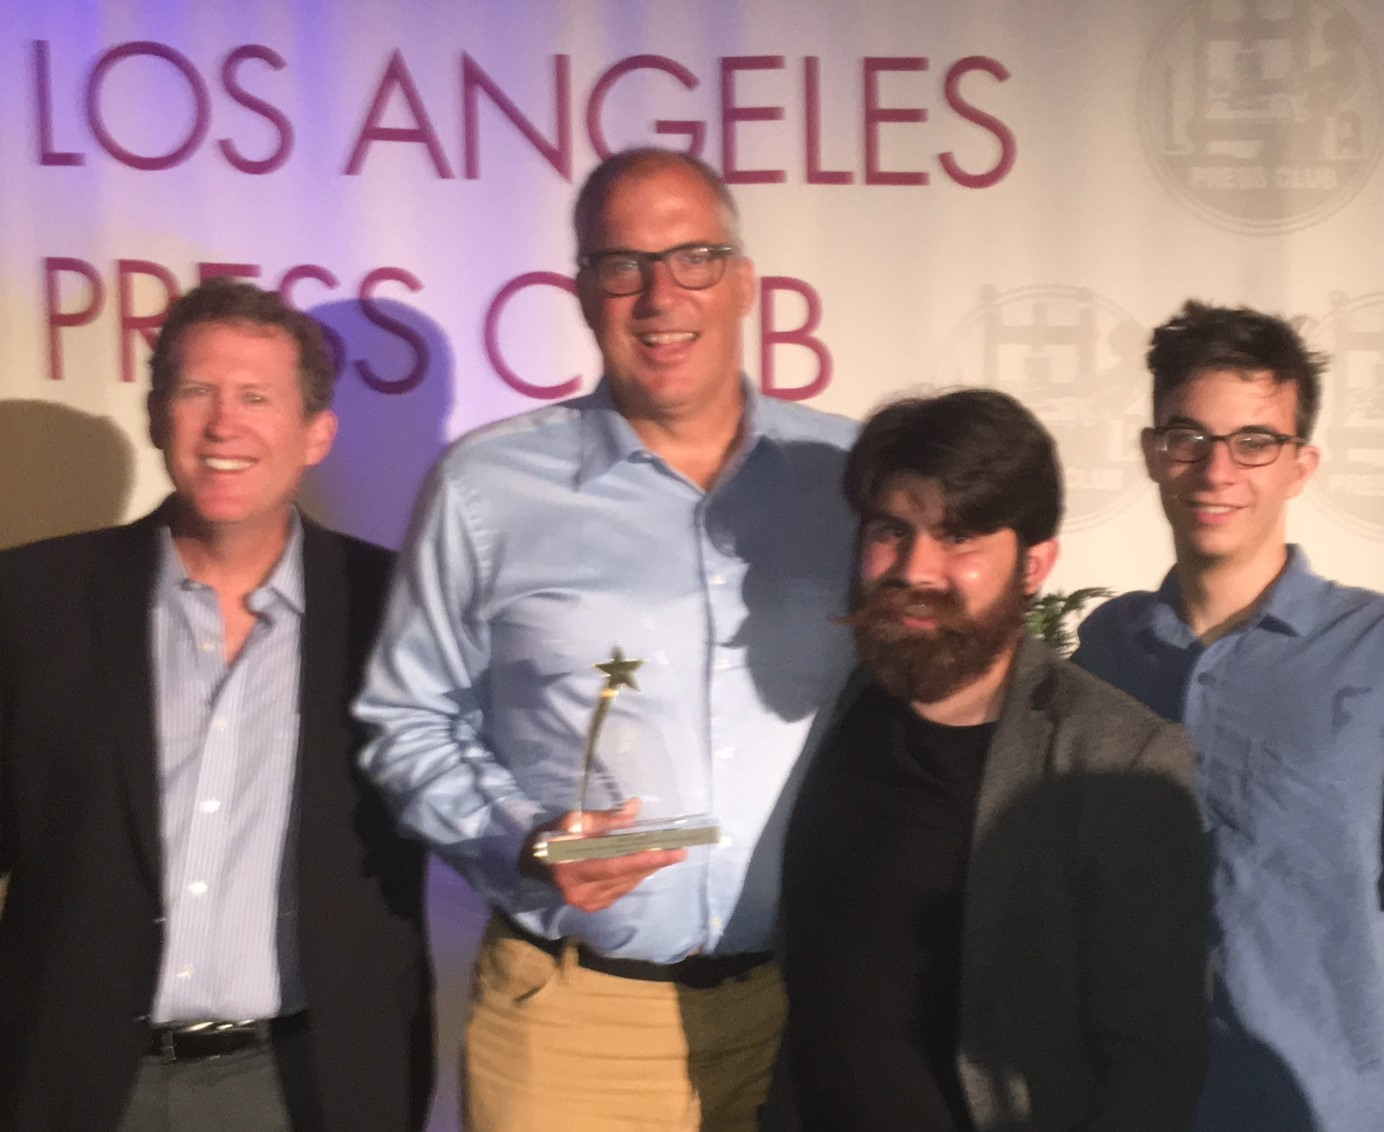 Streetsblog's team at last night's L.A. Press Club awards: left to right